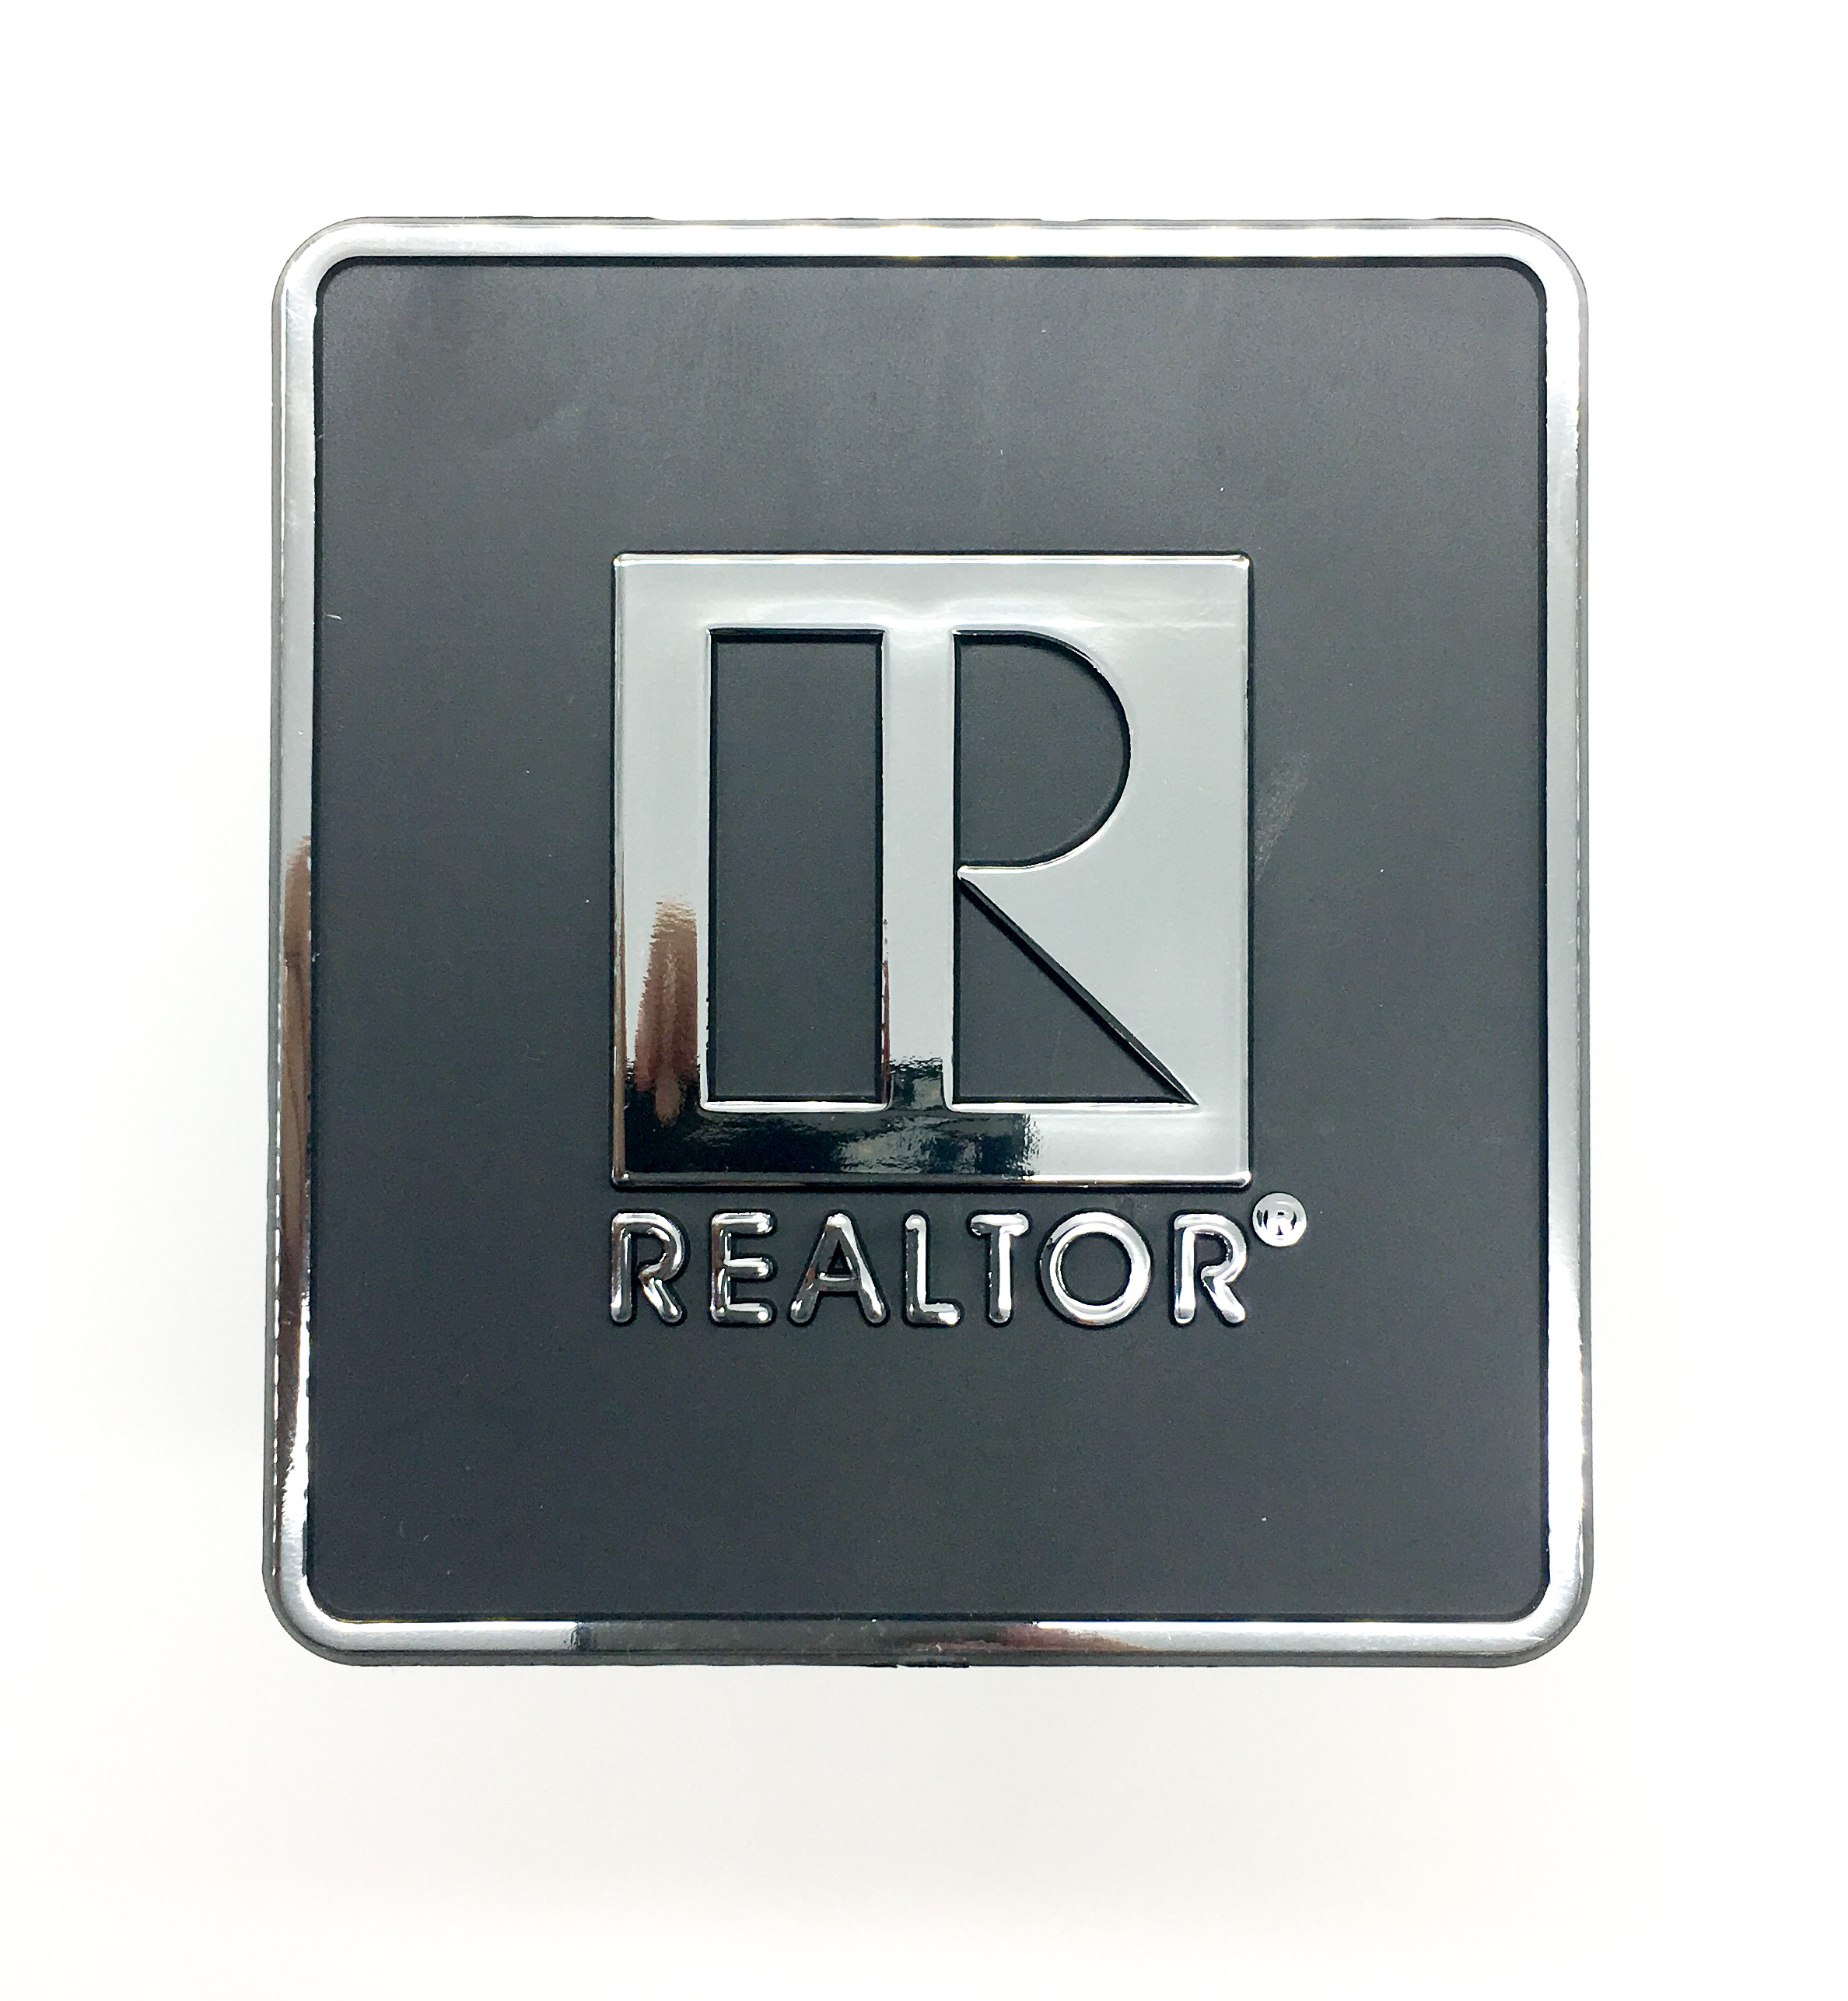 REALTOR®-logo Hitch Cover - RTS4661